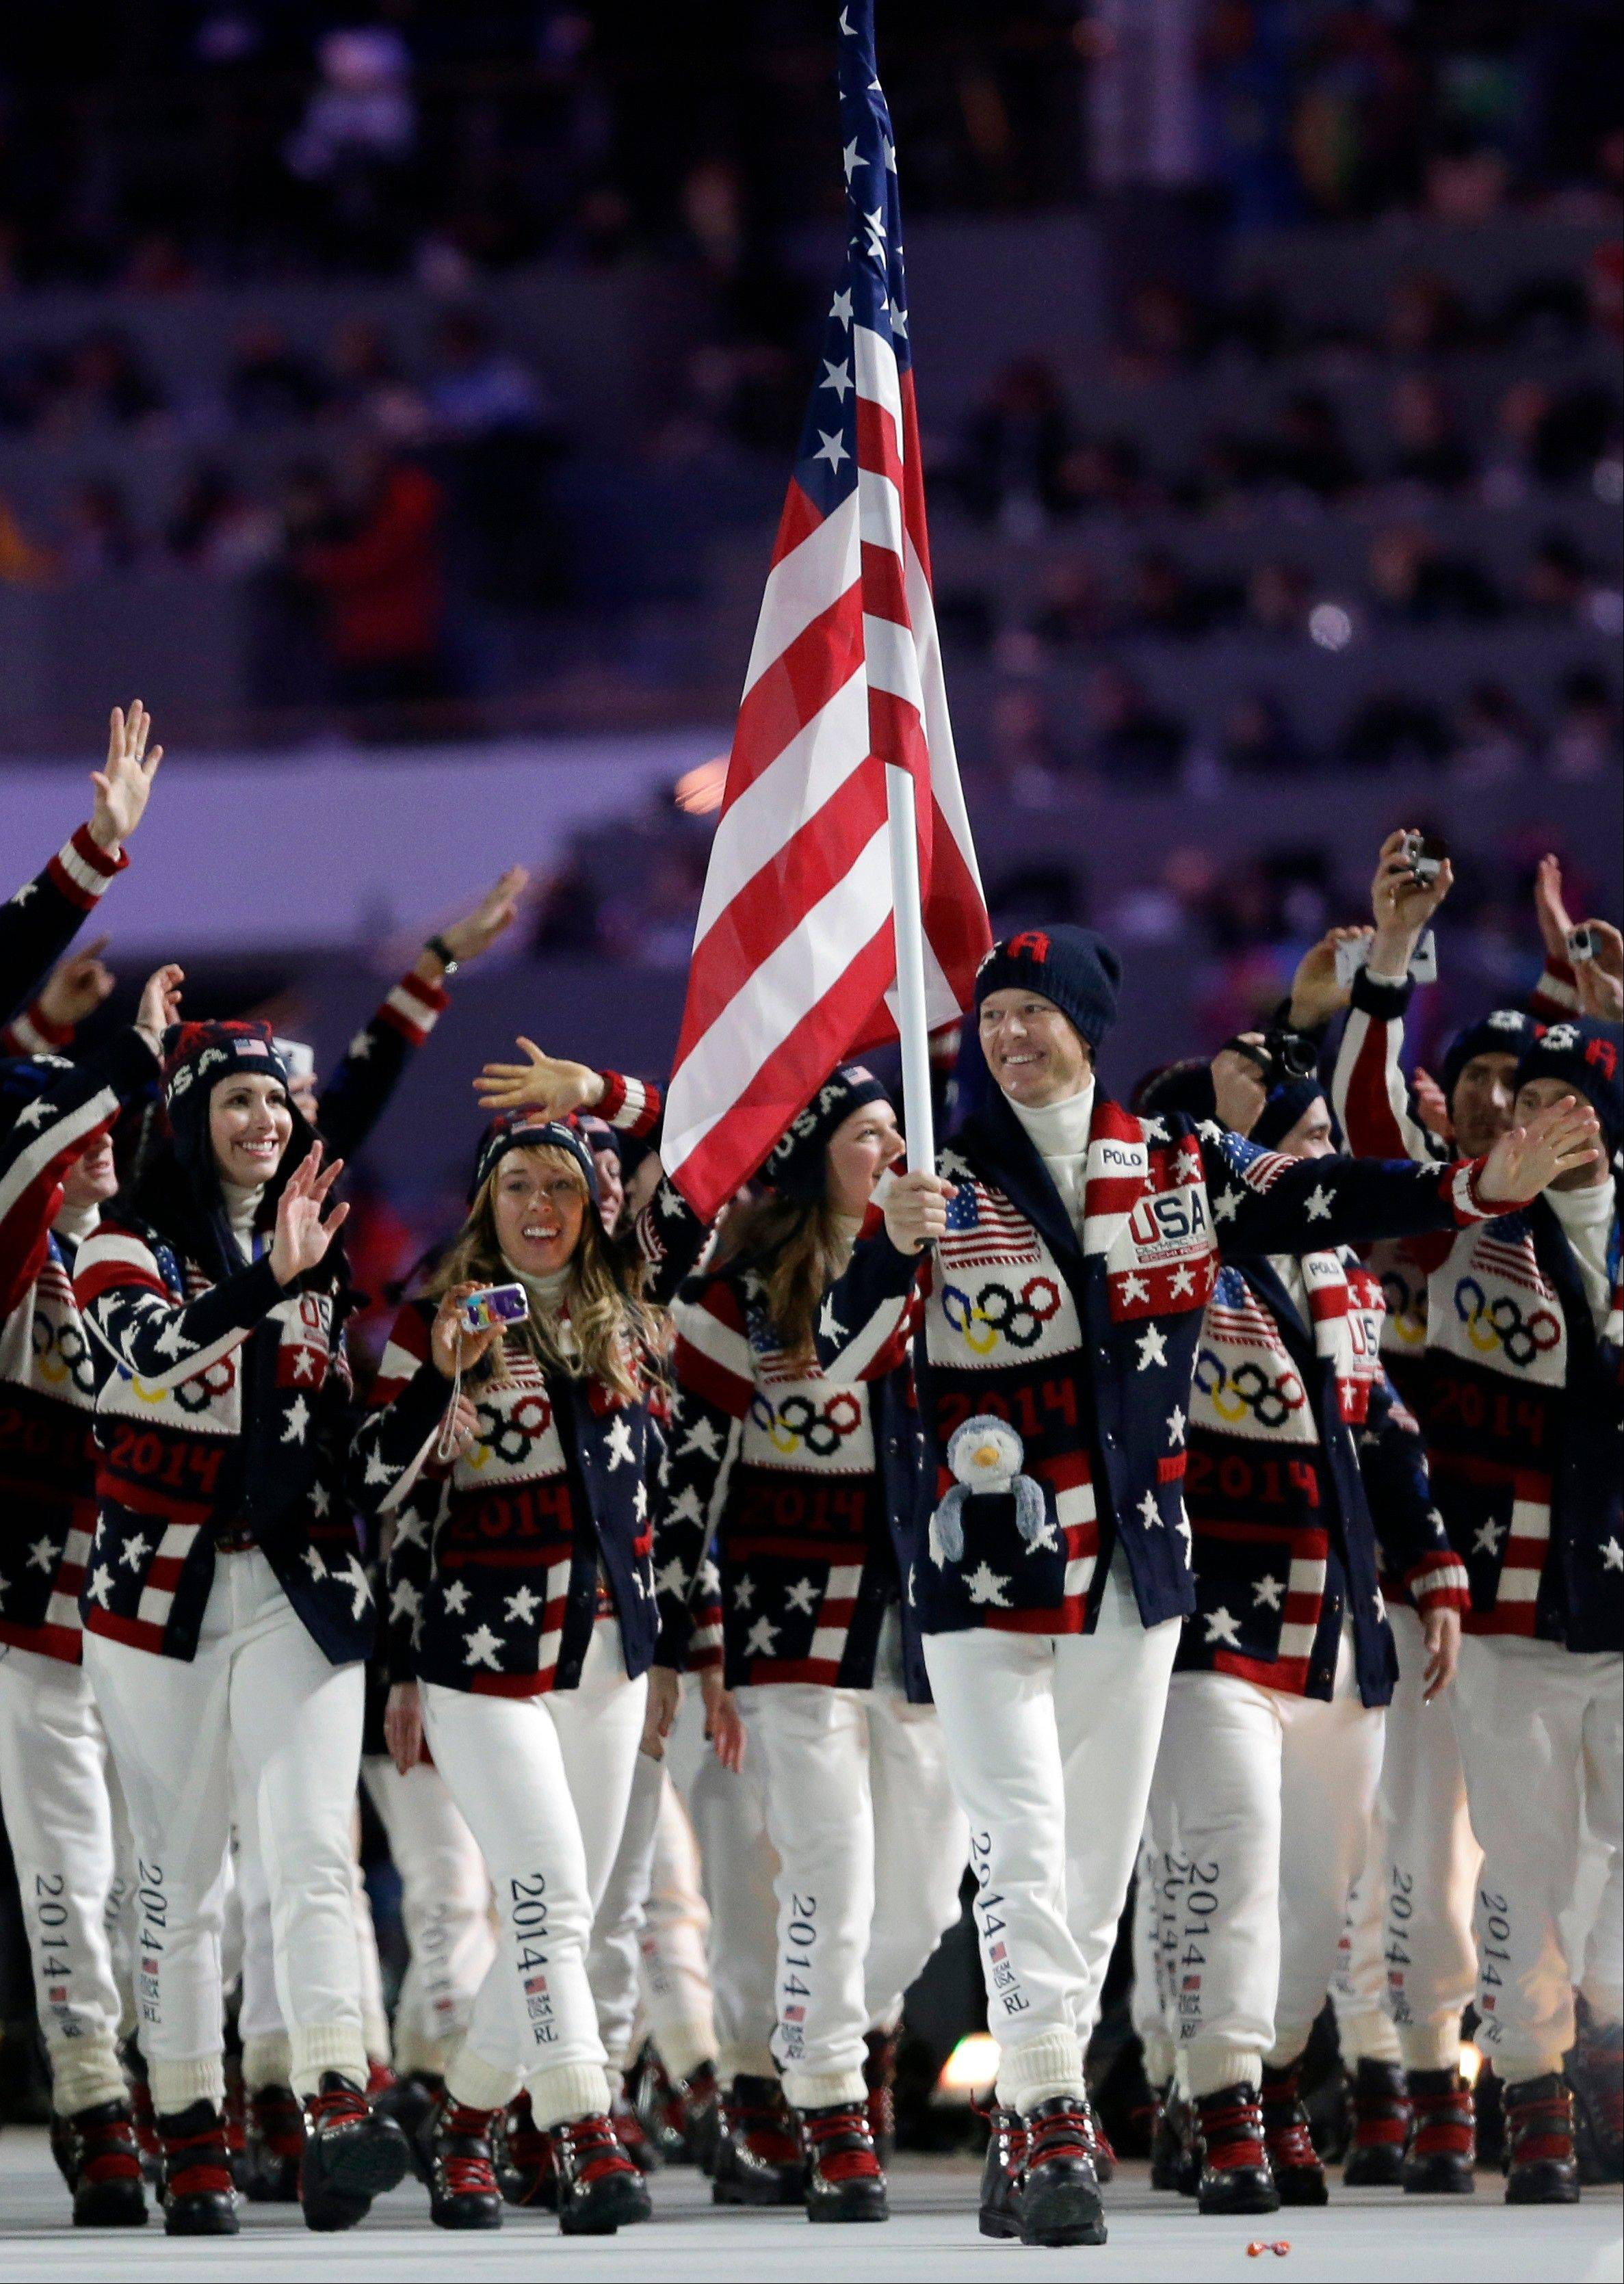 Todd Lodwick of the United States carries the national flag as he leads his team into the stadium during the opening ceremony .